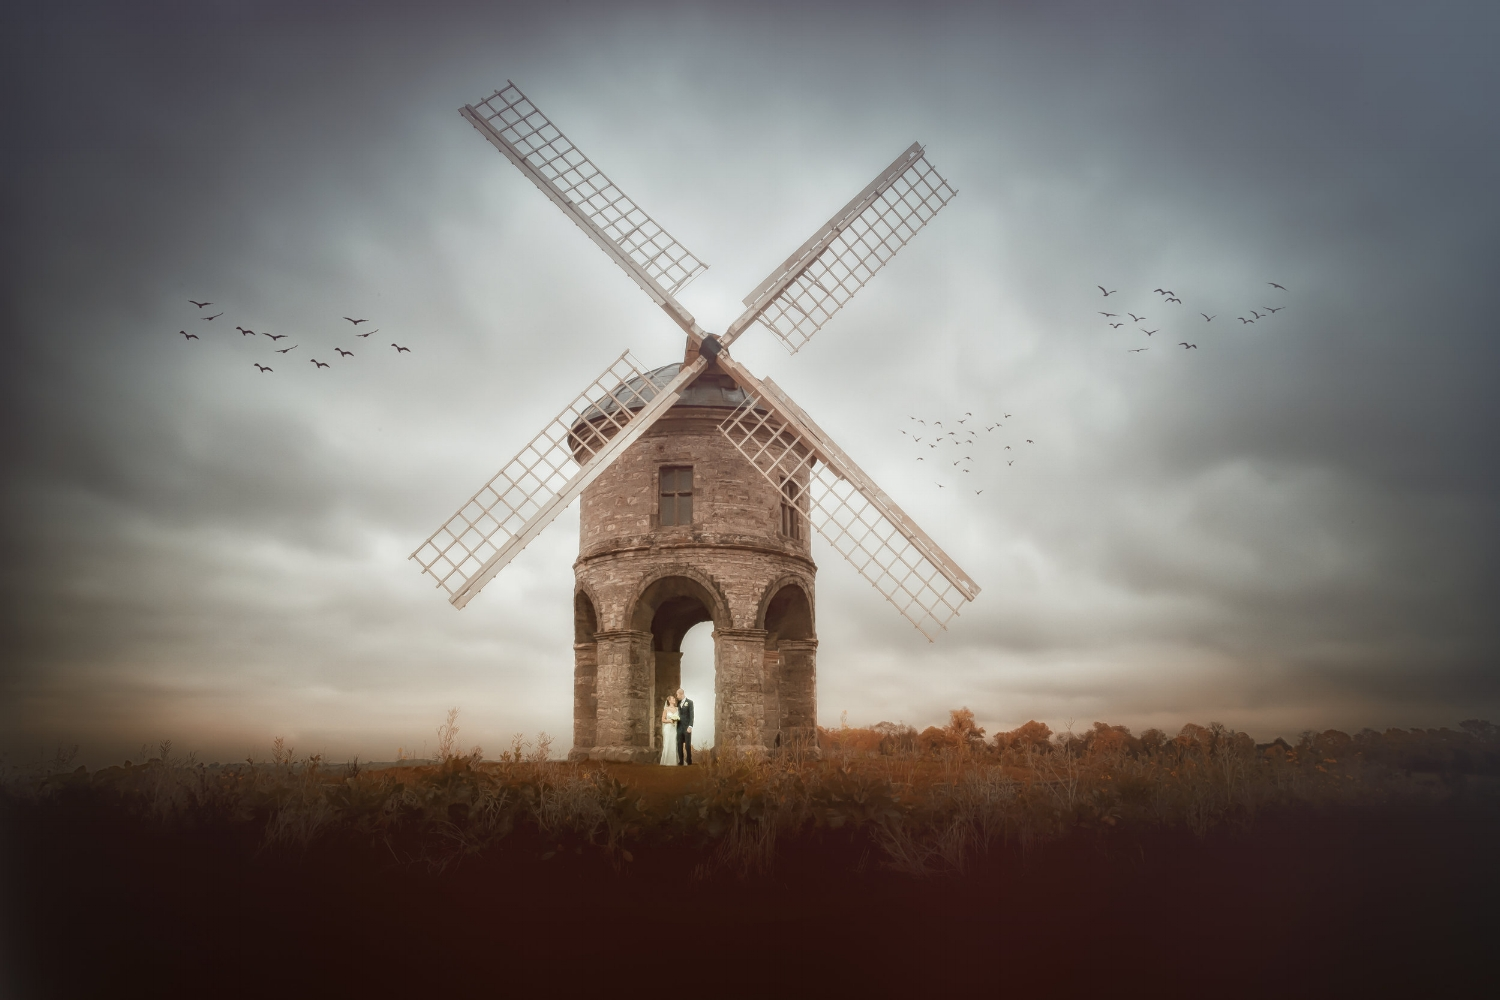 Wayne Hudson Photography, Lucria Creative, Cornwall and Devon wedding photographer based in Launceston. Image of Chesterton Windmill, Warwickshire